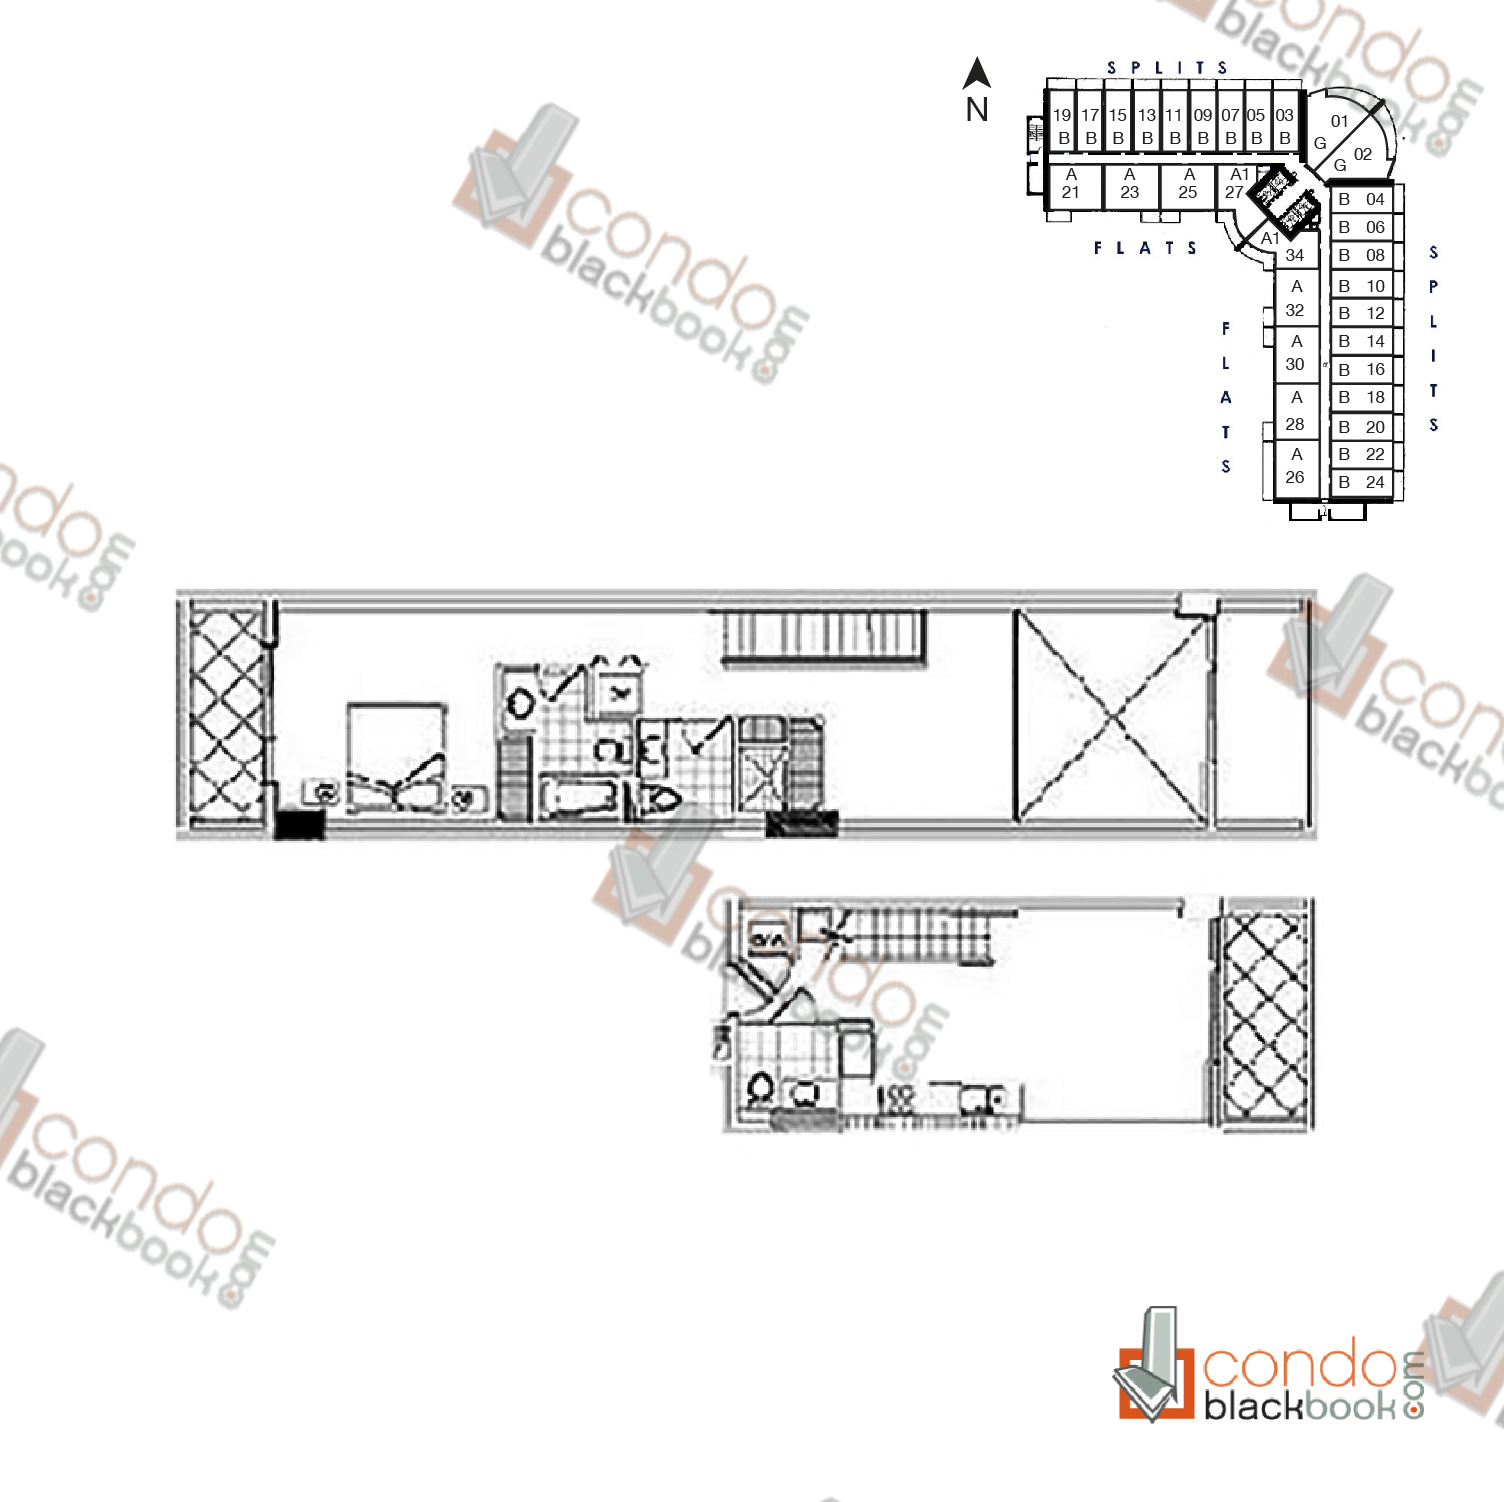 Floor plan for Neo Vertika Brickell Miami, model Split C, 2/2 bedrooms, 1,065 sq ft